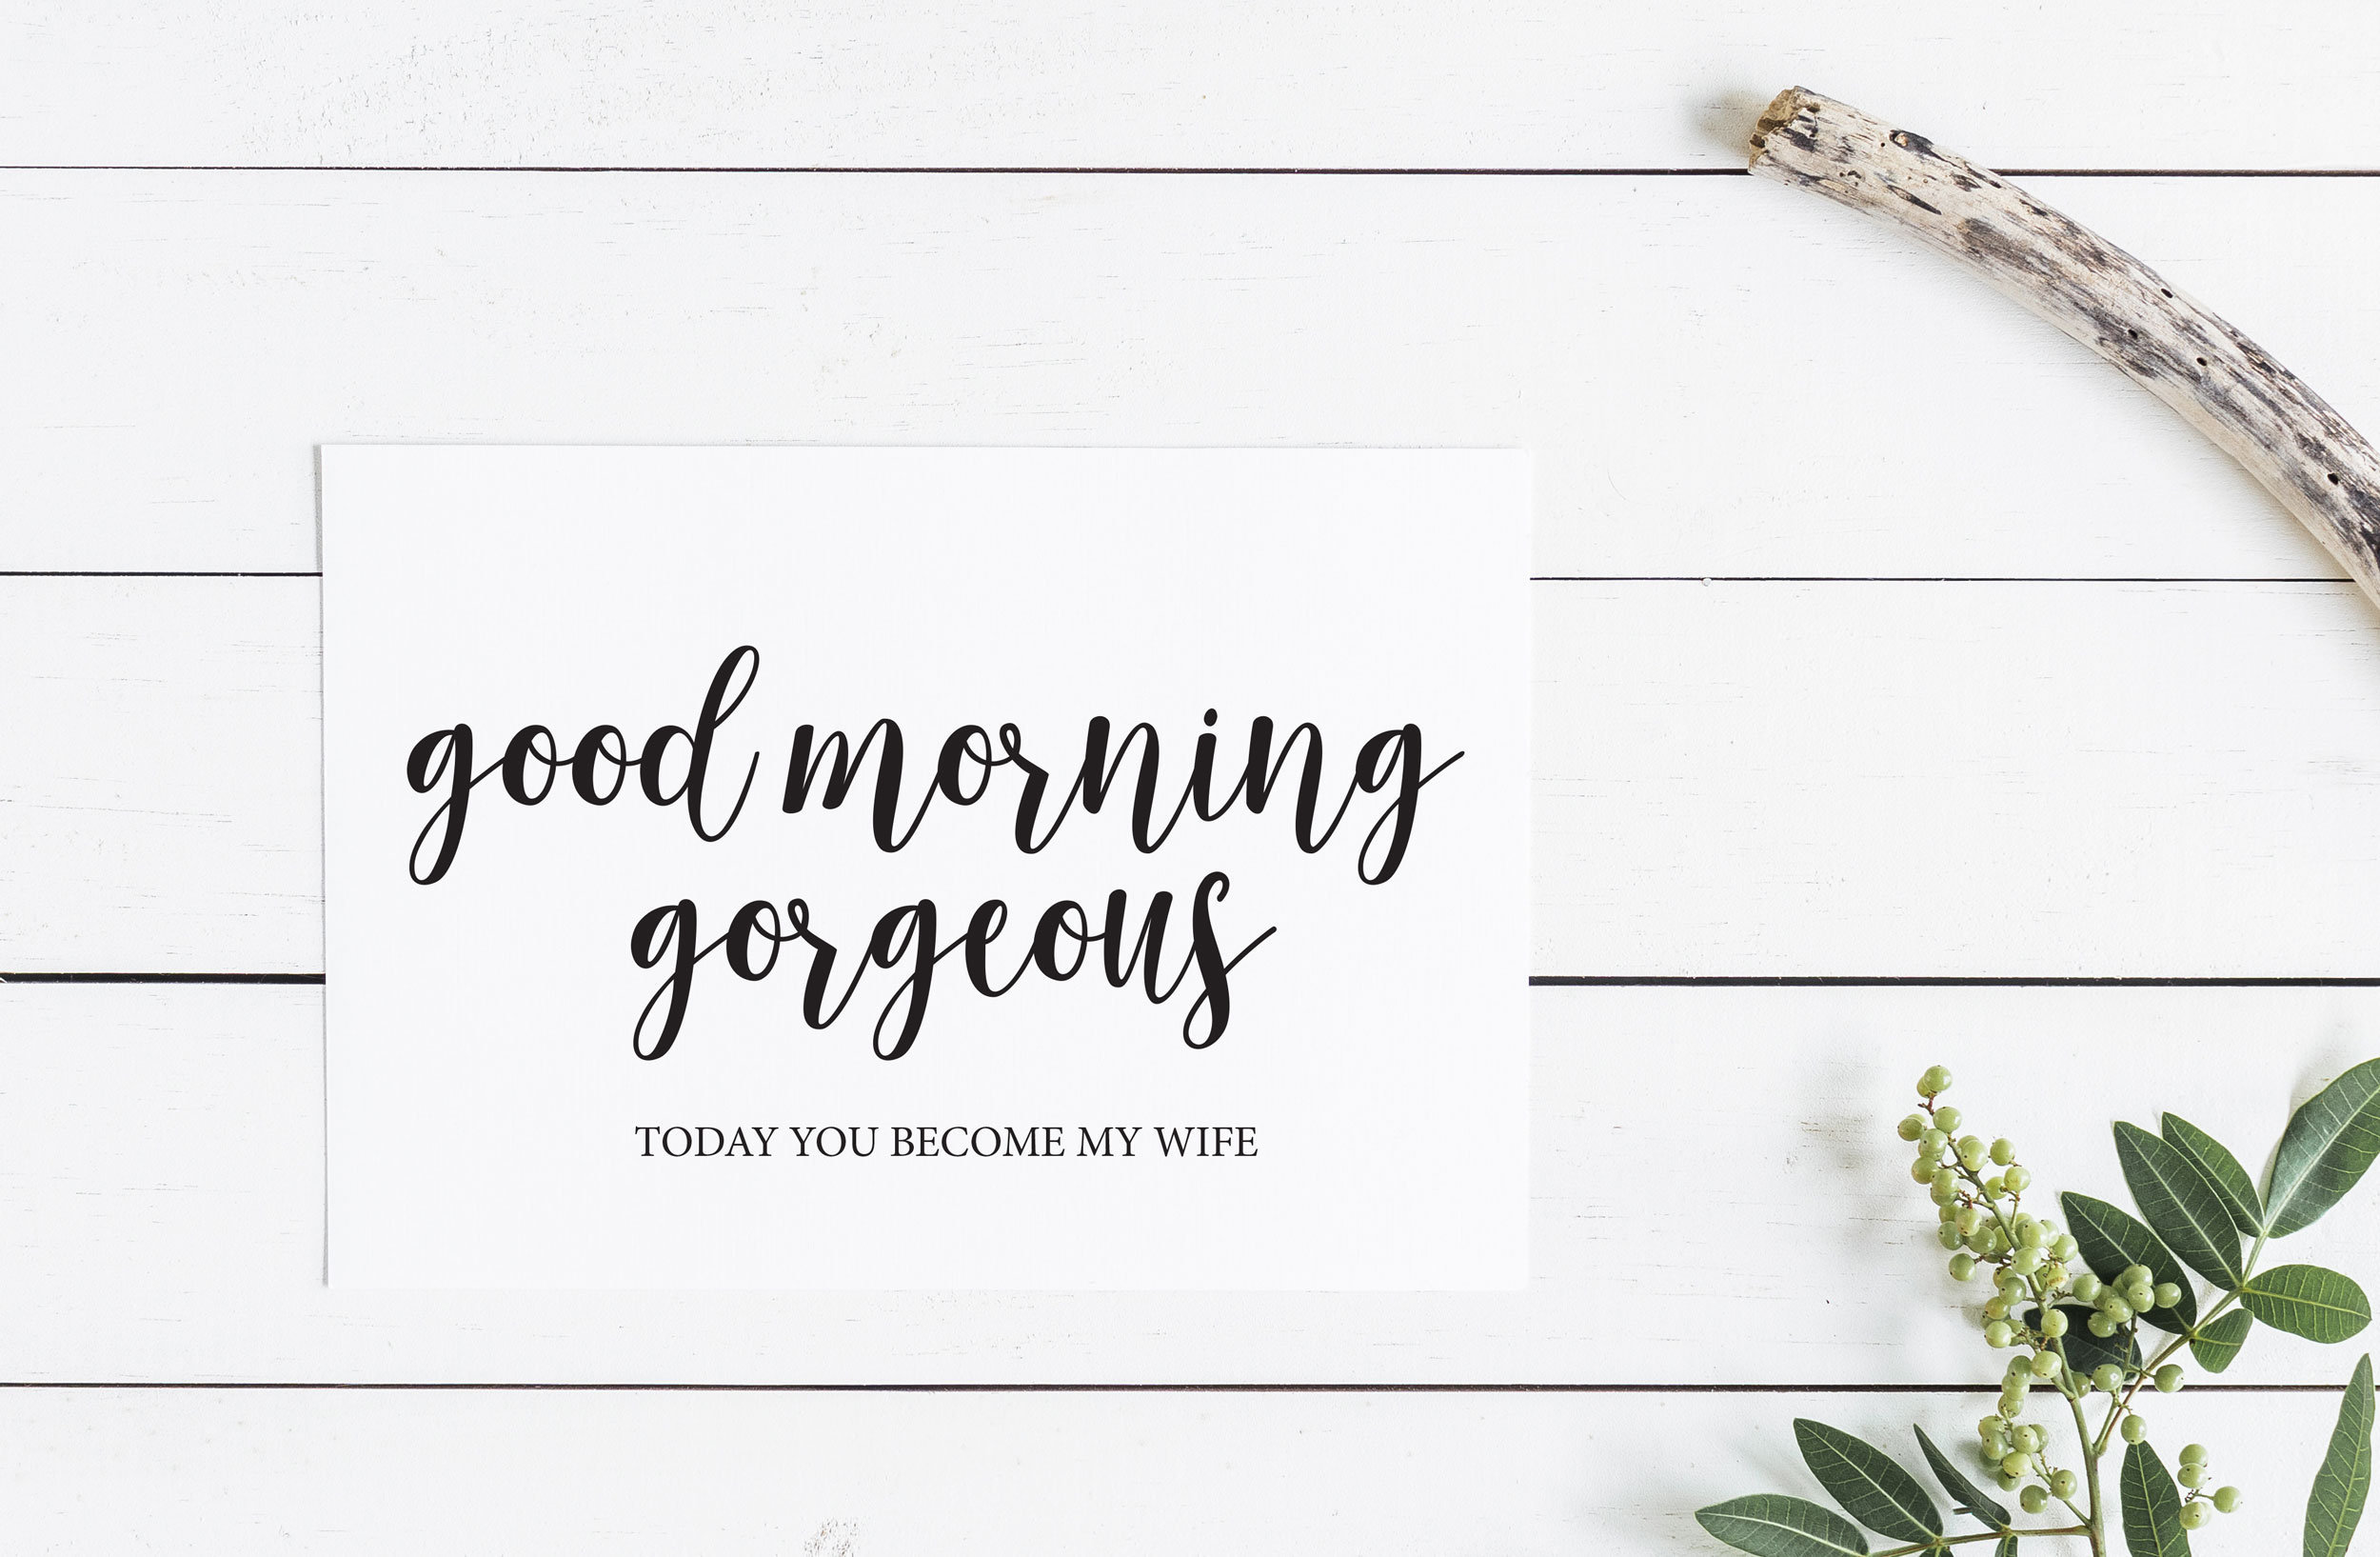 good morning gorgeous hello handsome to my groom bride cards groom card bride card wedding cards bride gifts groom 2 cards